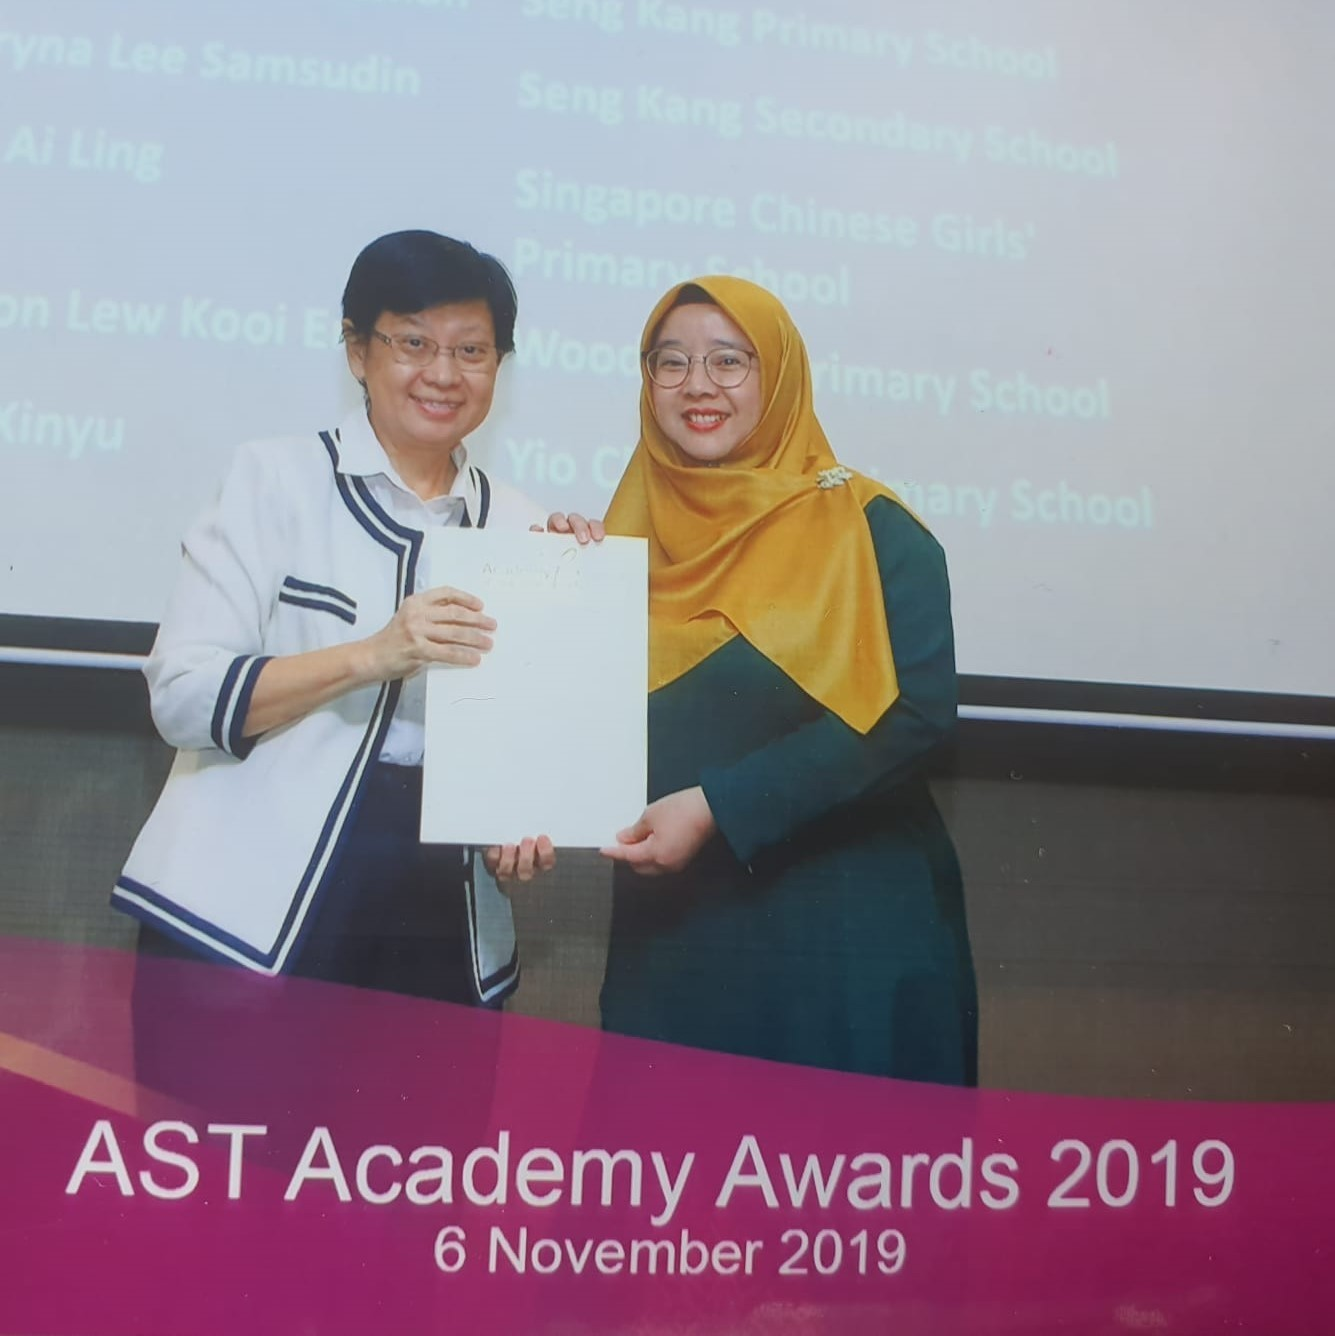 Ms Saz AST Award 2019.jpeg